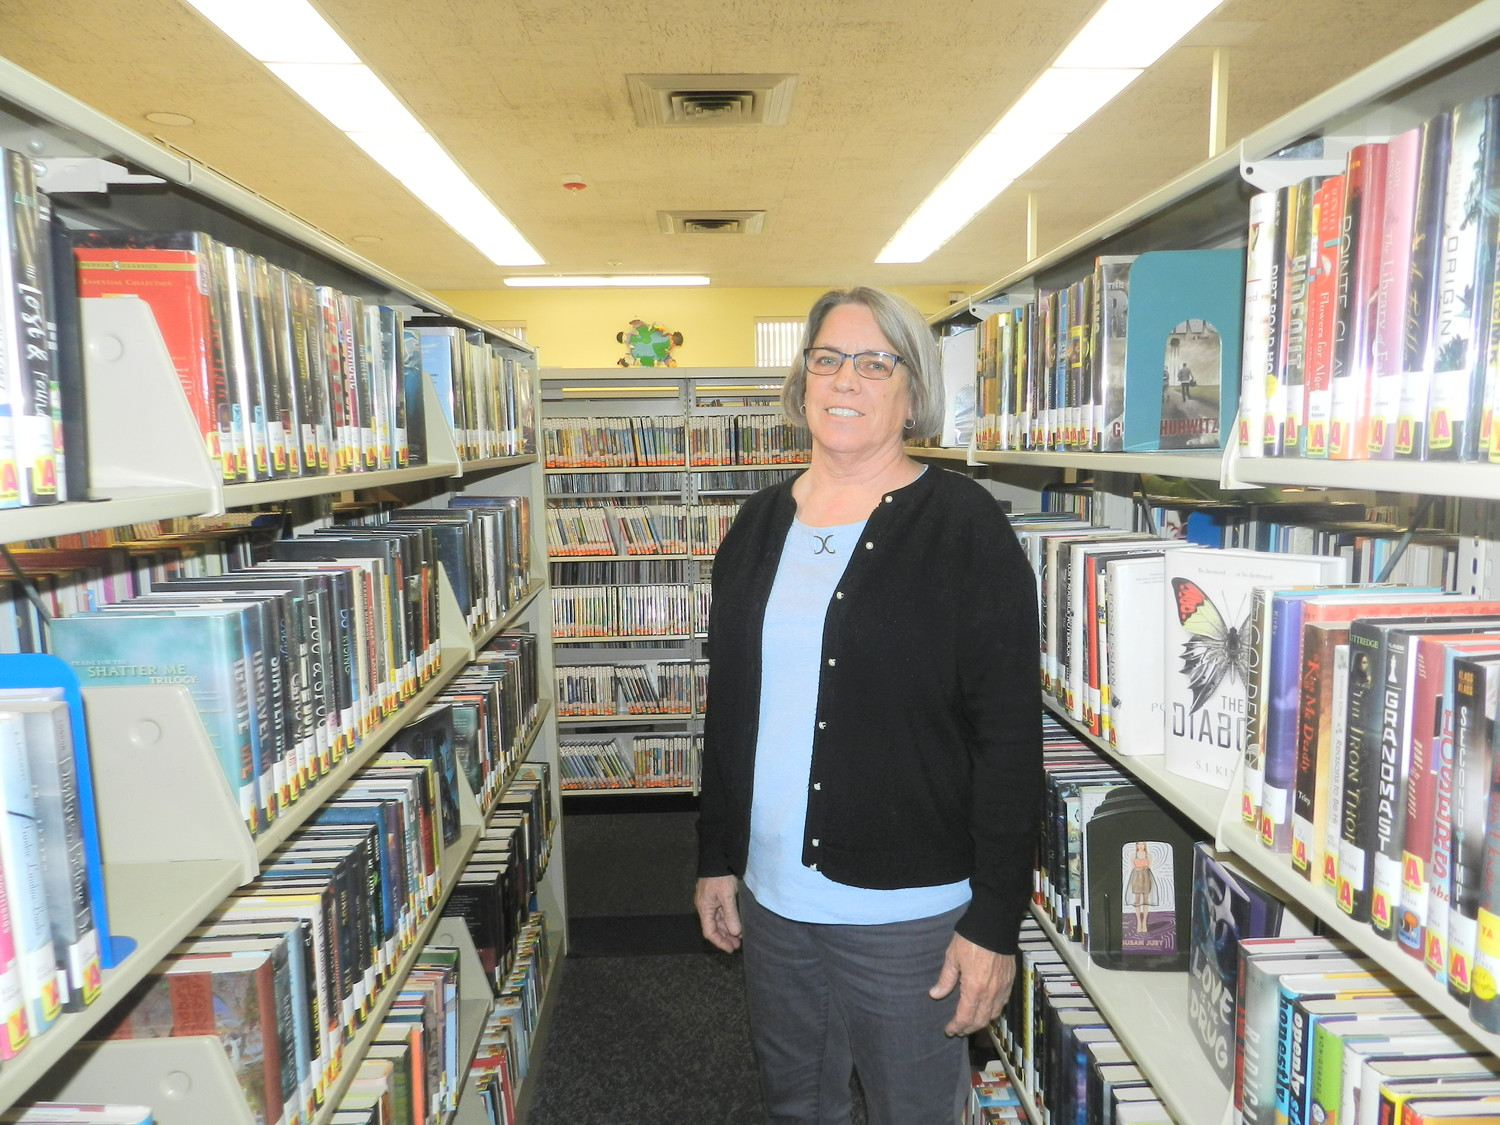 Kathie Flynn has been the director of the Glen Cove Library for six years. Before that, she worked for Barnes and Noble for 20 years, and recalls her fascination with the Carle Place location and its inviting setting.